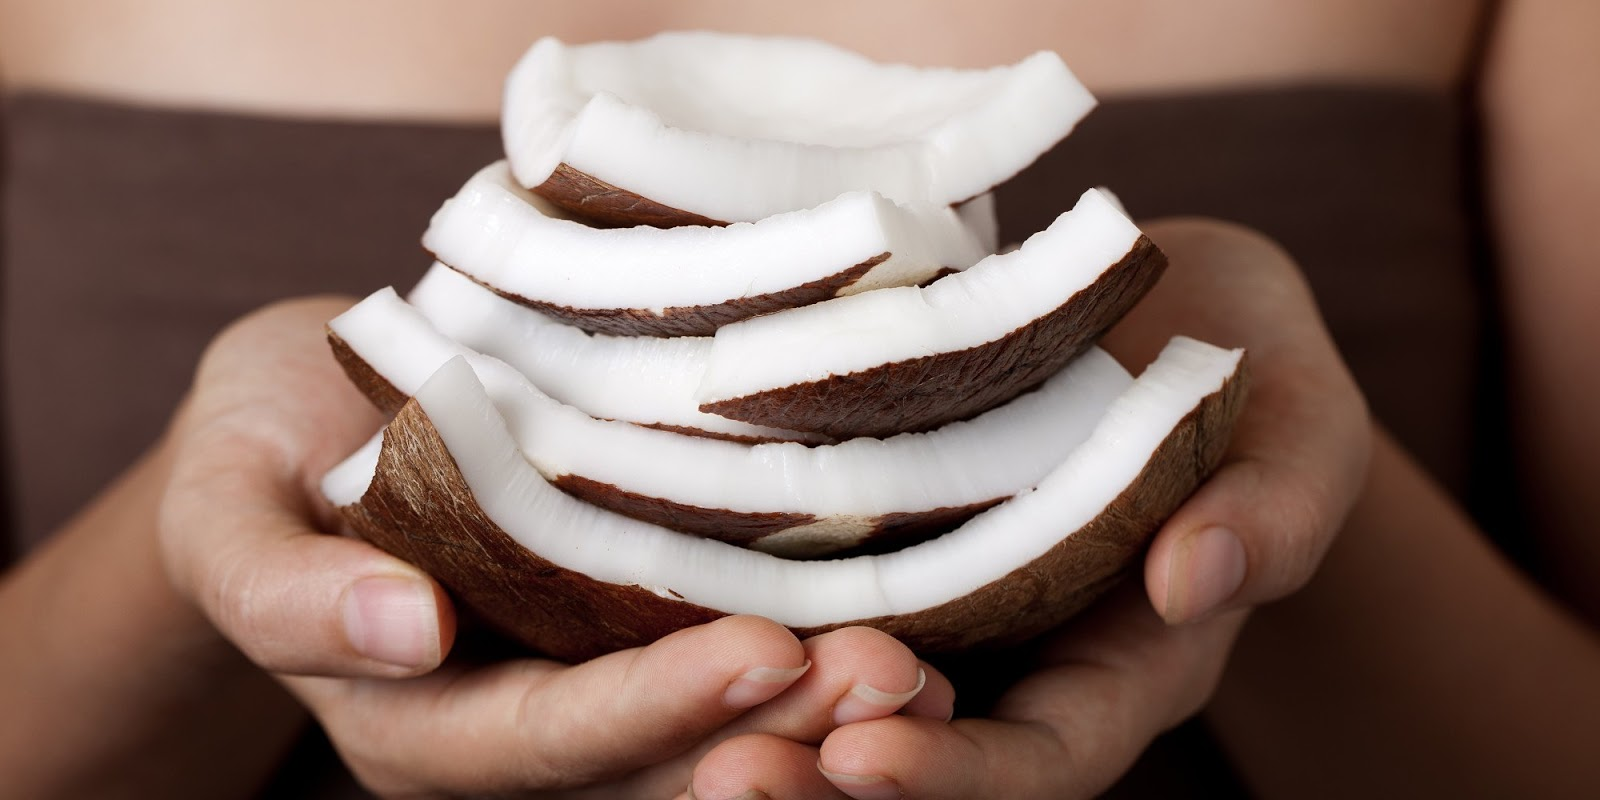 Study Confirms Only 1 TBSP of Coconut Oil Produces Powerful Changes To Your Health